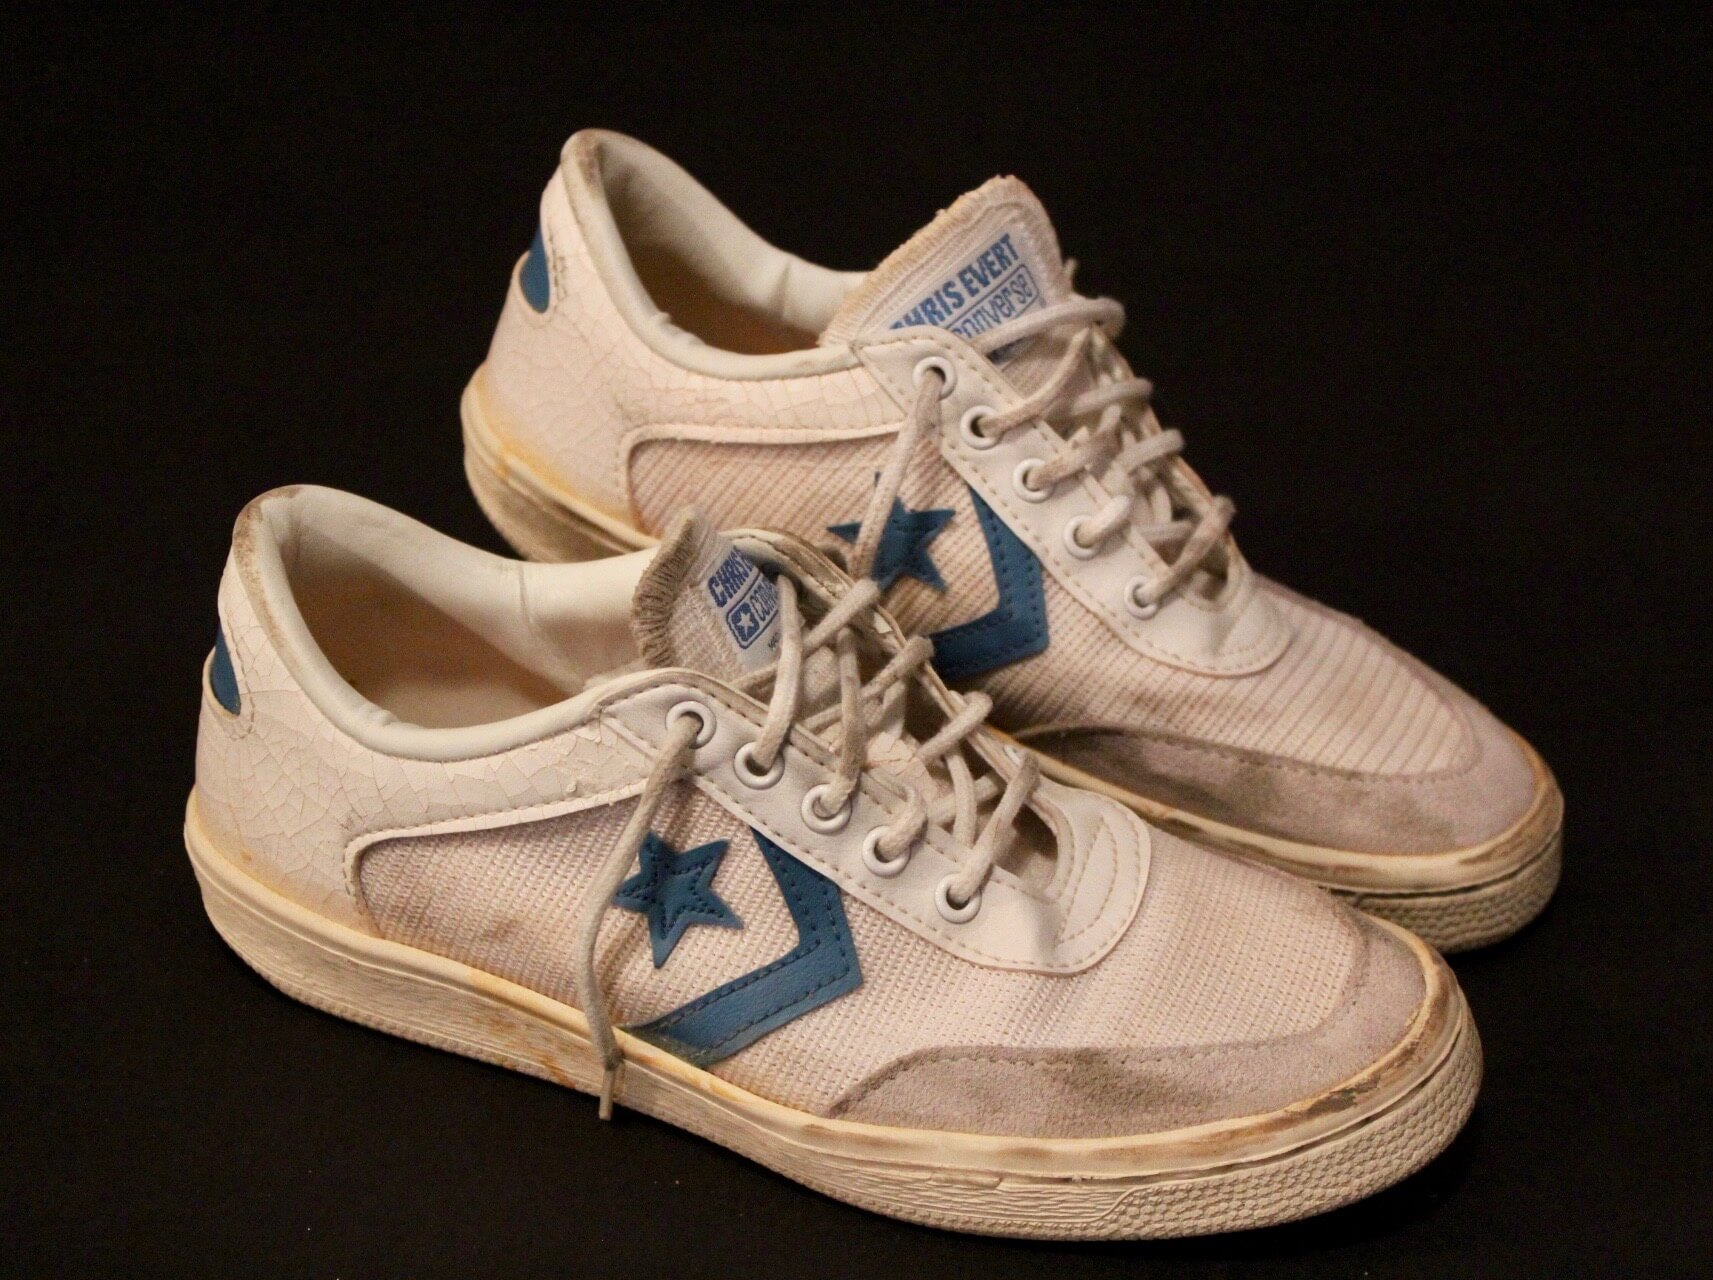 8fb2a7e0a89b A Pair of Chris Evert Game-Used Custom Converse Tennis Shoes. 1980 US Open  (Women s Singles Champion).